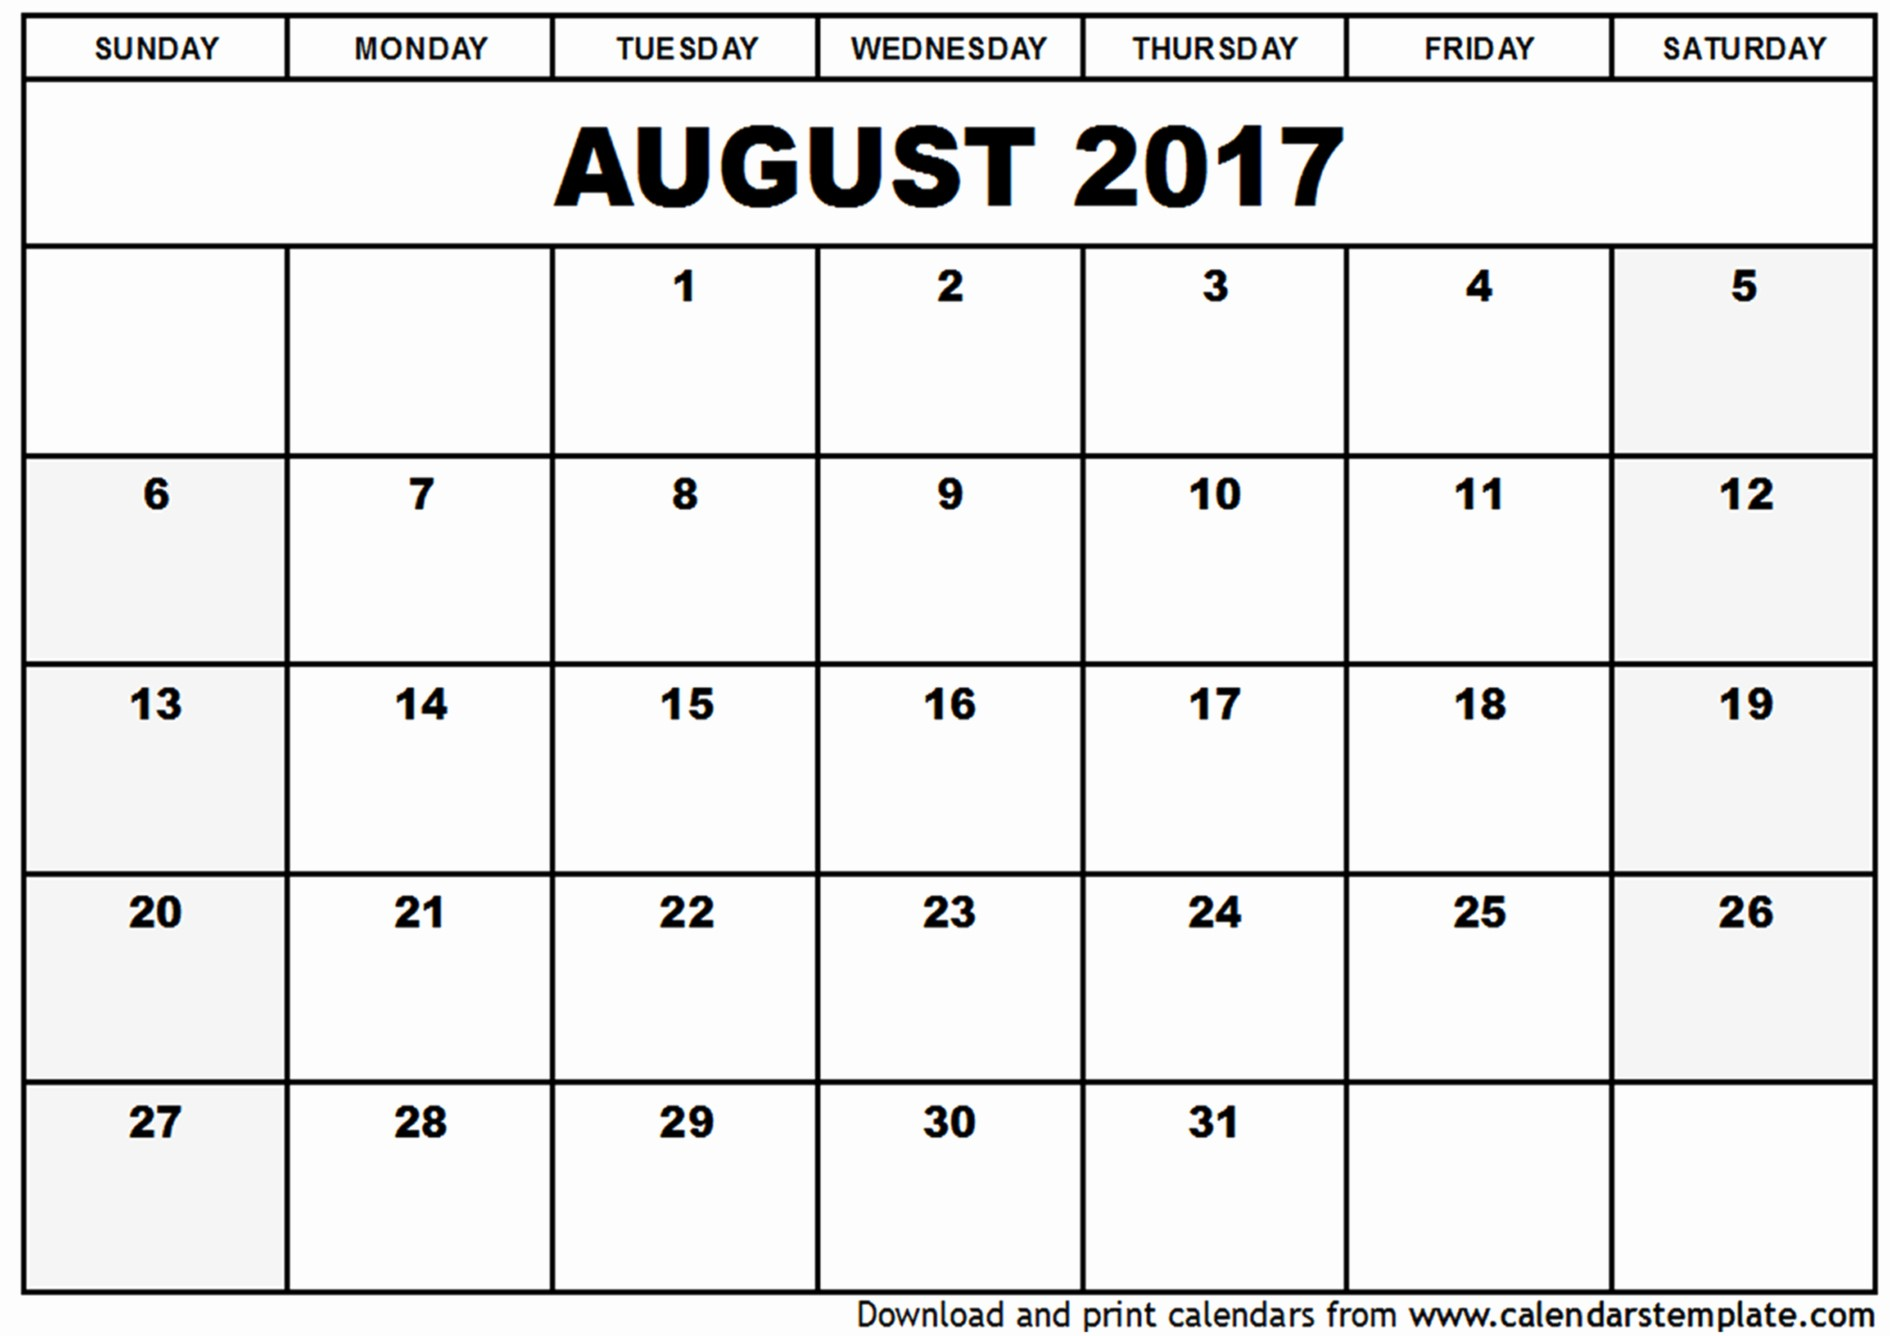 Blank Calendar Template August 2017 Unique August 2017 Calendar Template